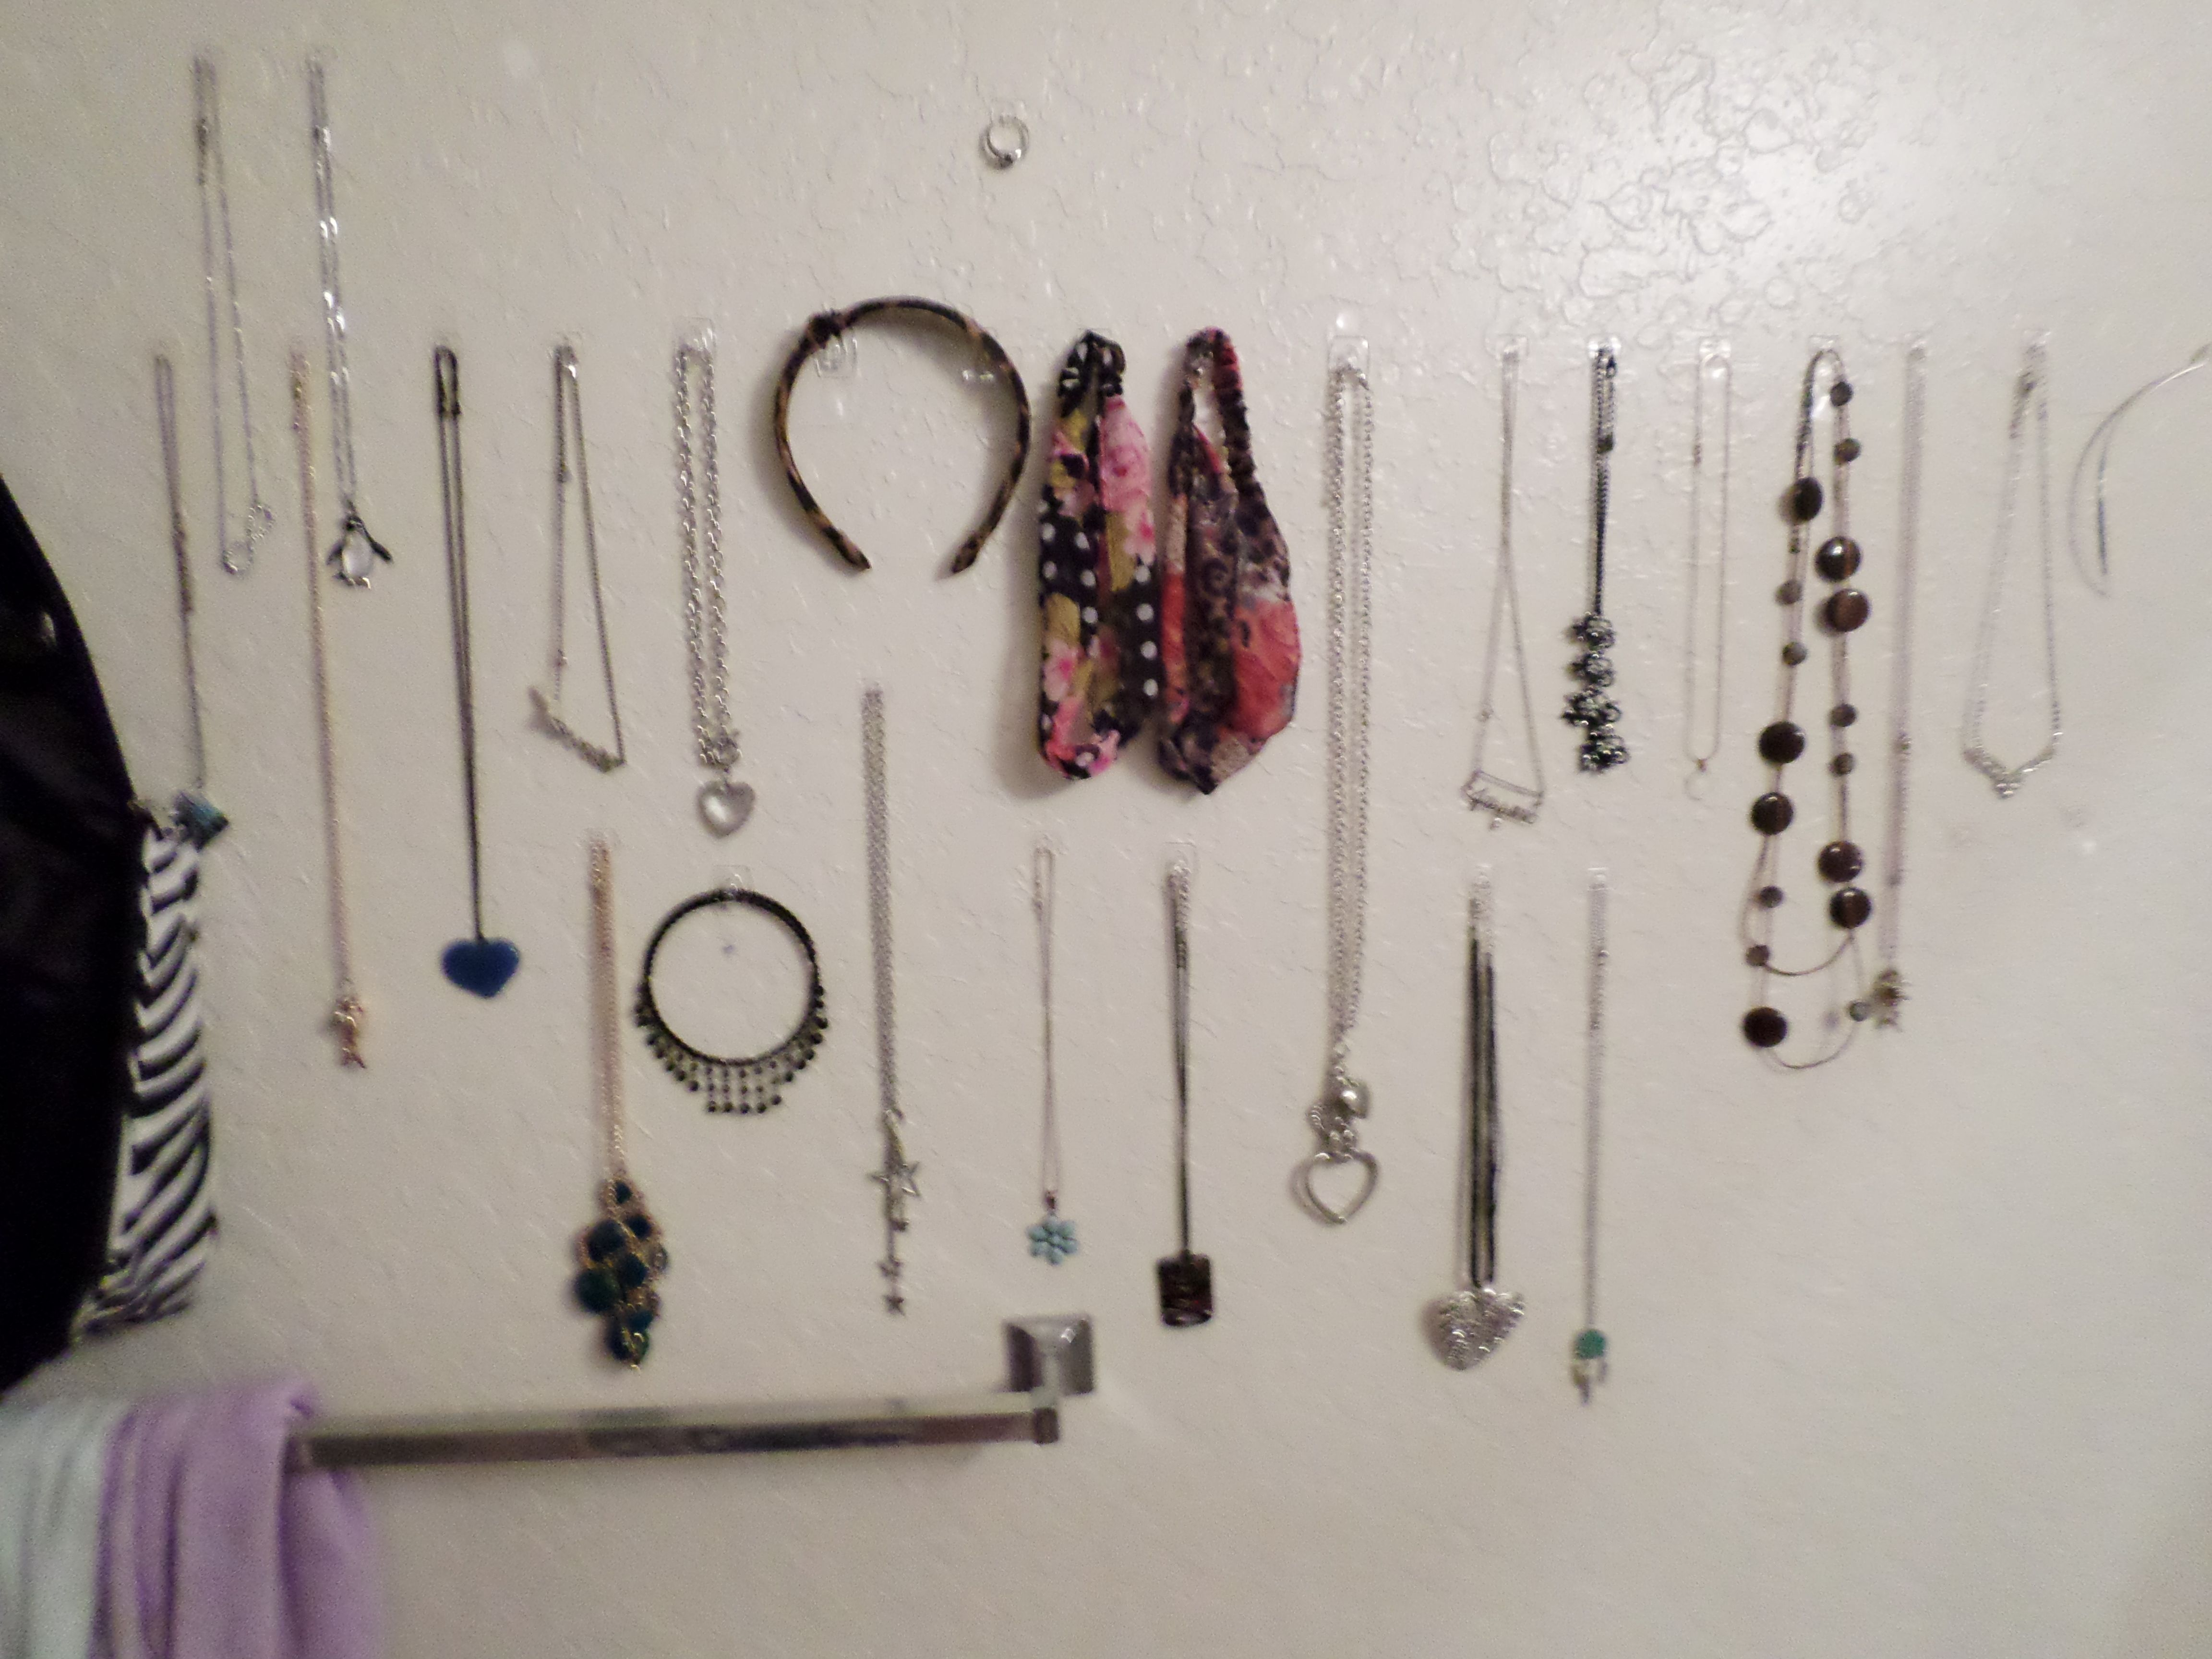 Hanging all the necklaces and headbands I own on the command hooks you can get at the store. Saves tons of space and makes my jewelry easy to throw on since I don't have to search for it. It also makes my walls seem less bare and boring!